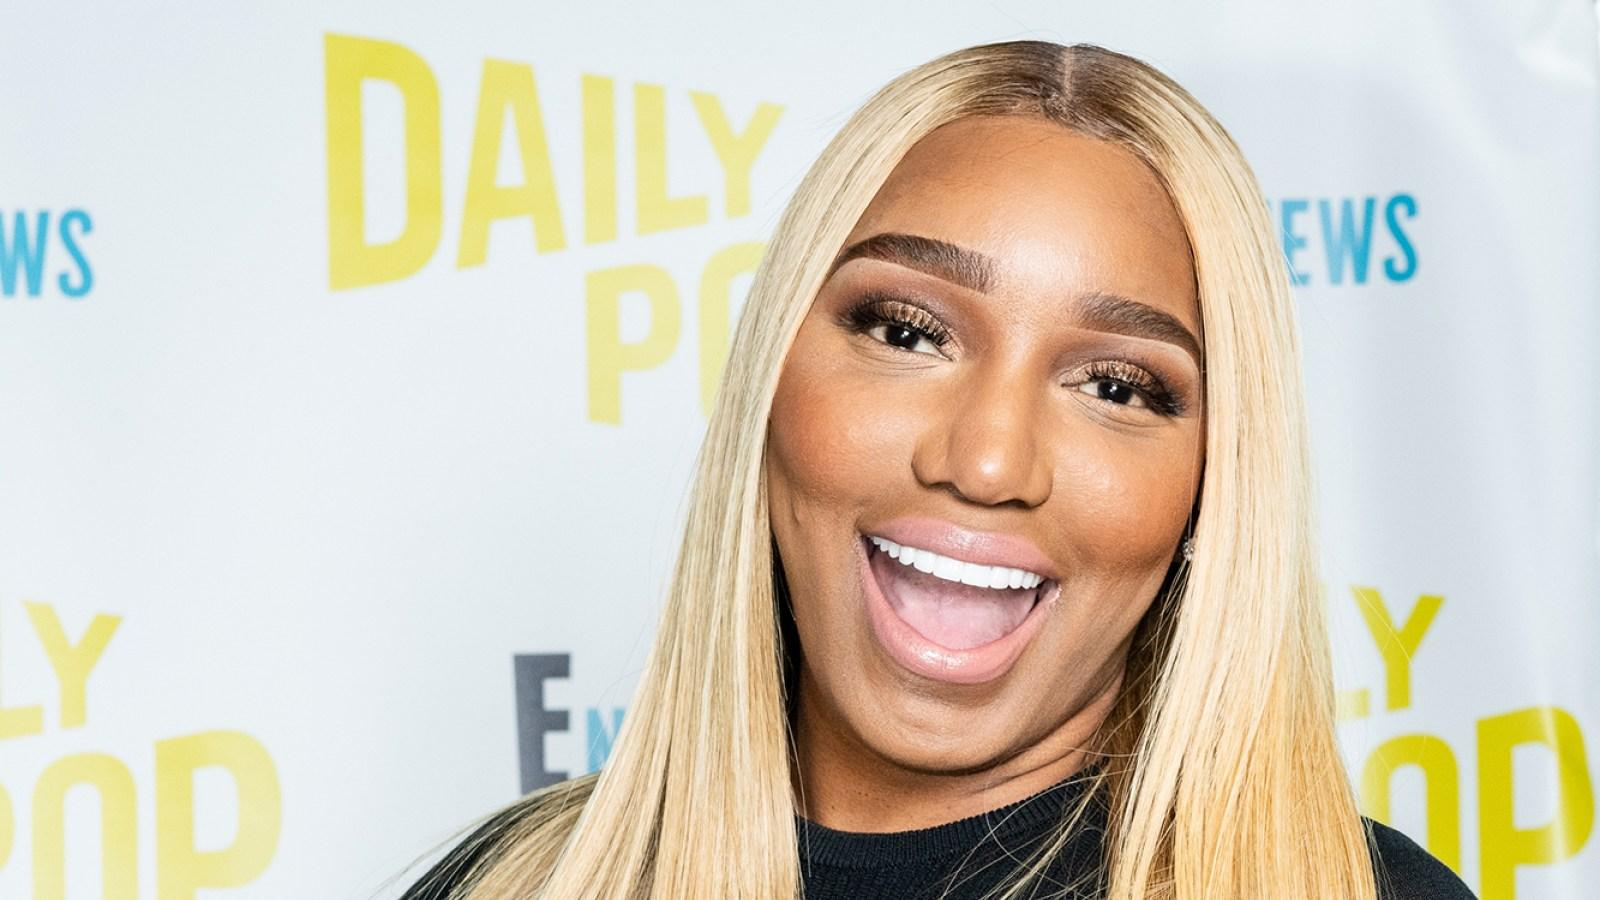 NeNe Leakes Created Her Very Own Studio - A Tour Is In The Works!